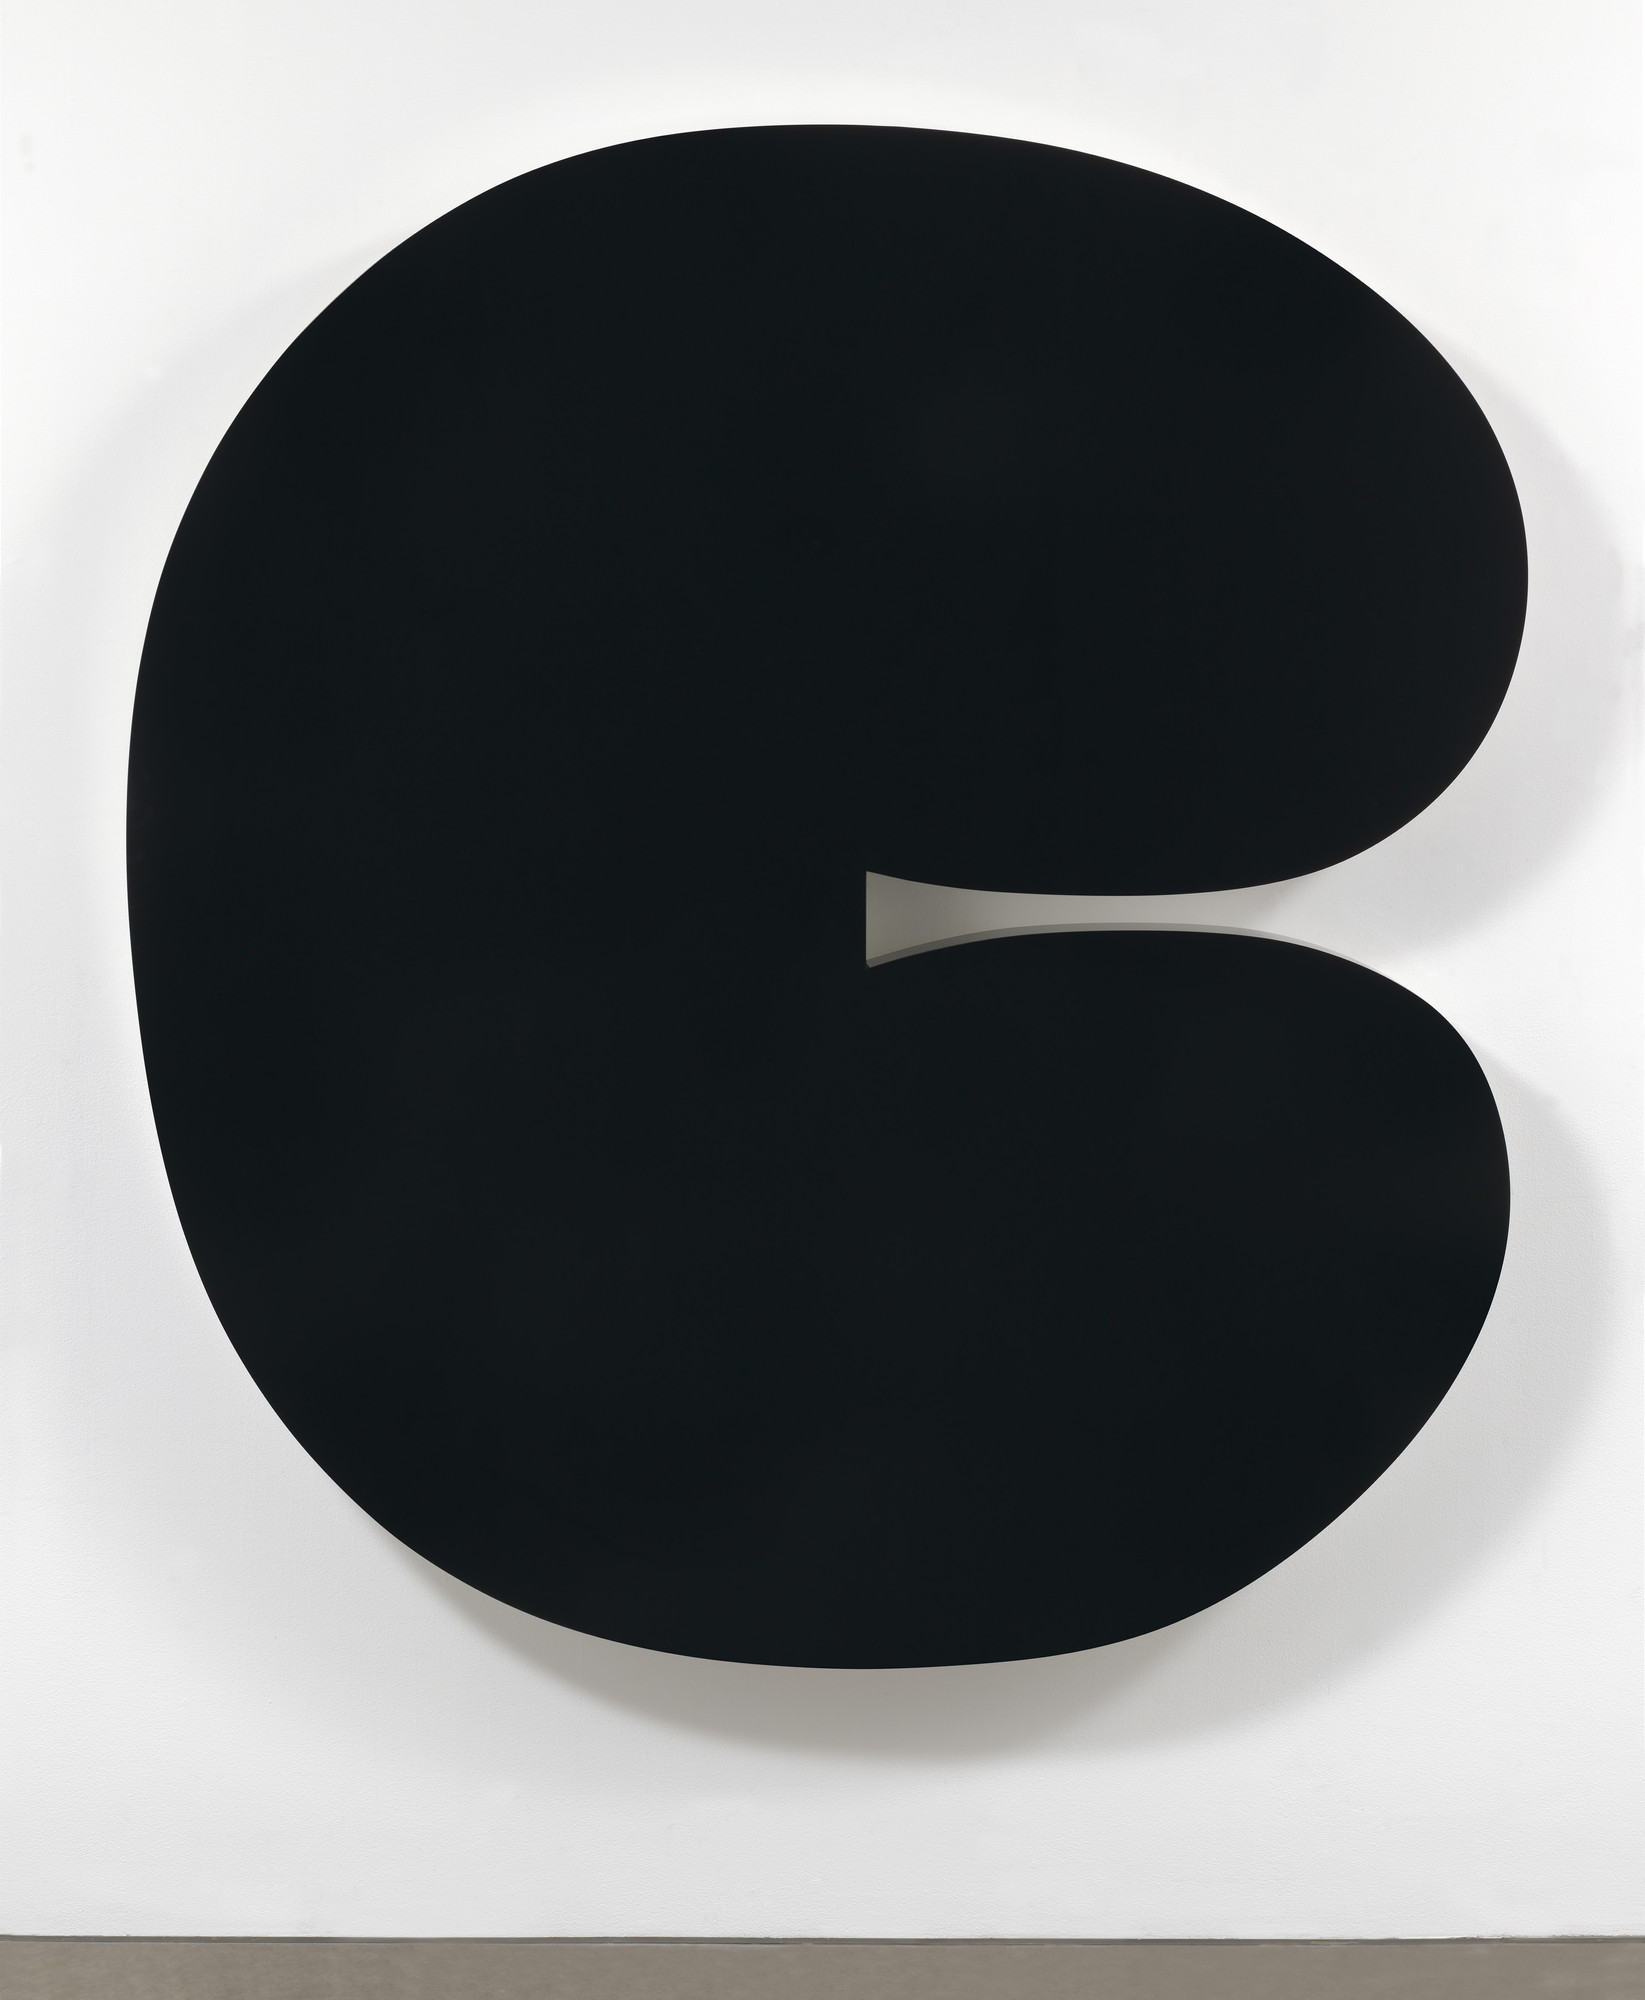 Ellsworth Kelly. Black Form II. 2012